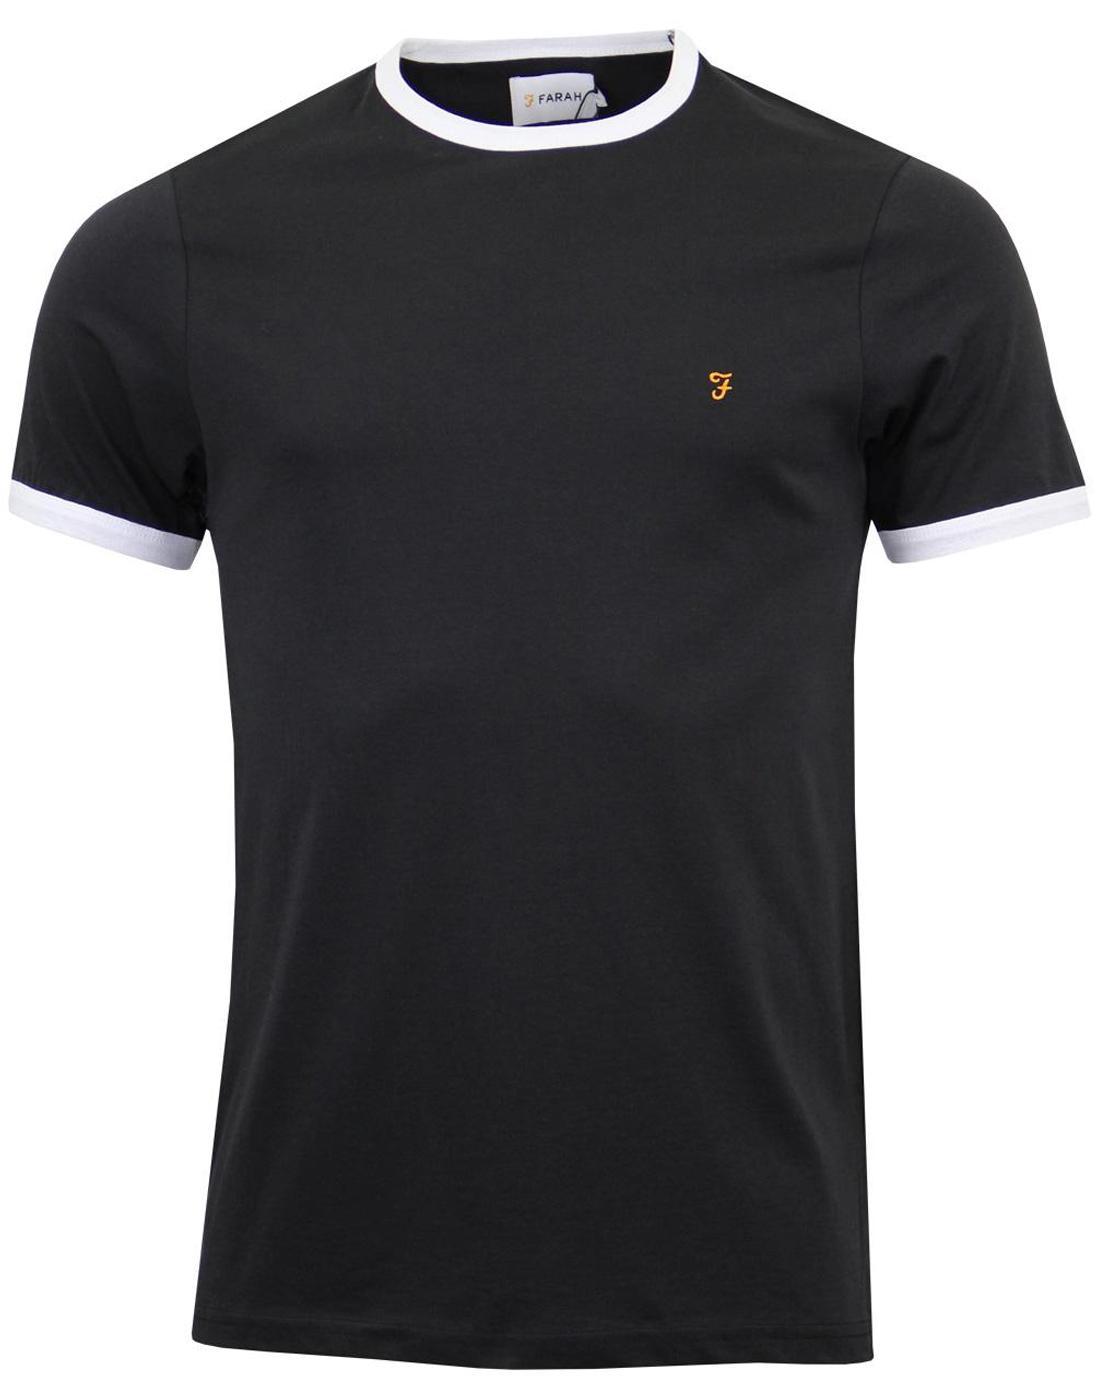 The Groves FARAH Retro Mod Ringer T-shirt - Black